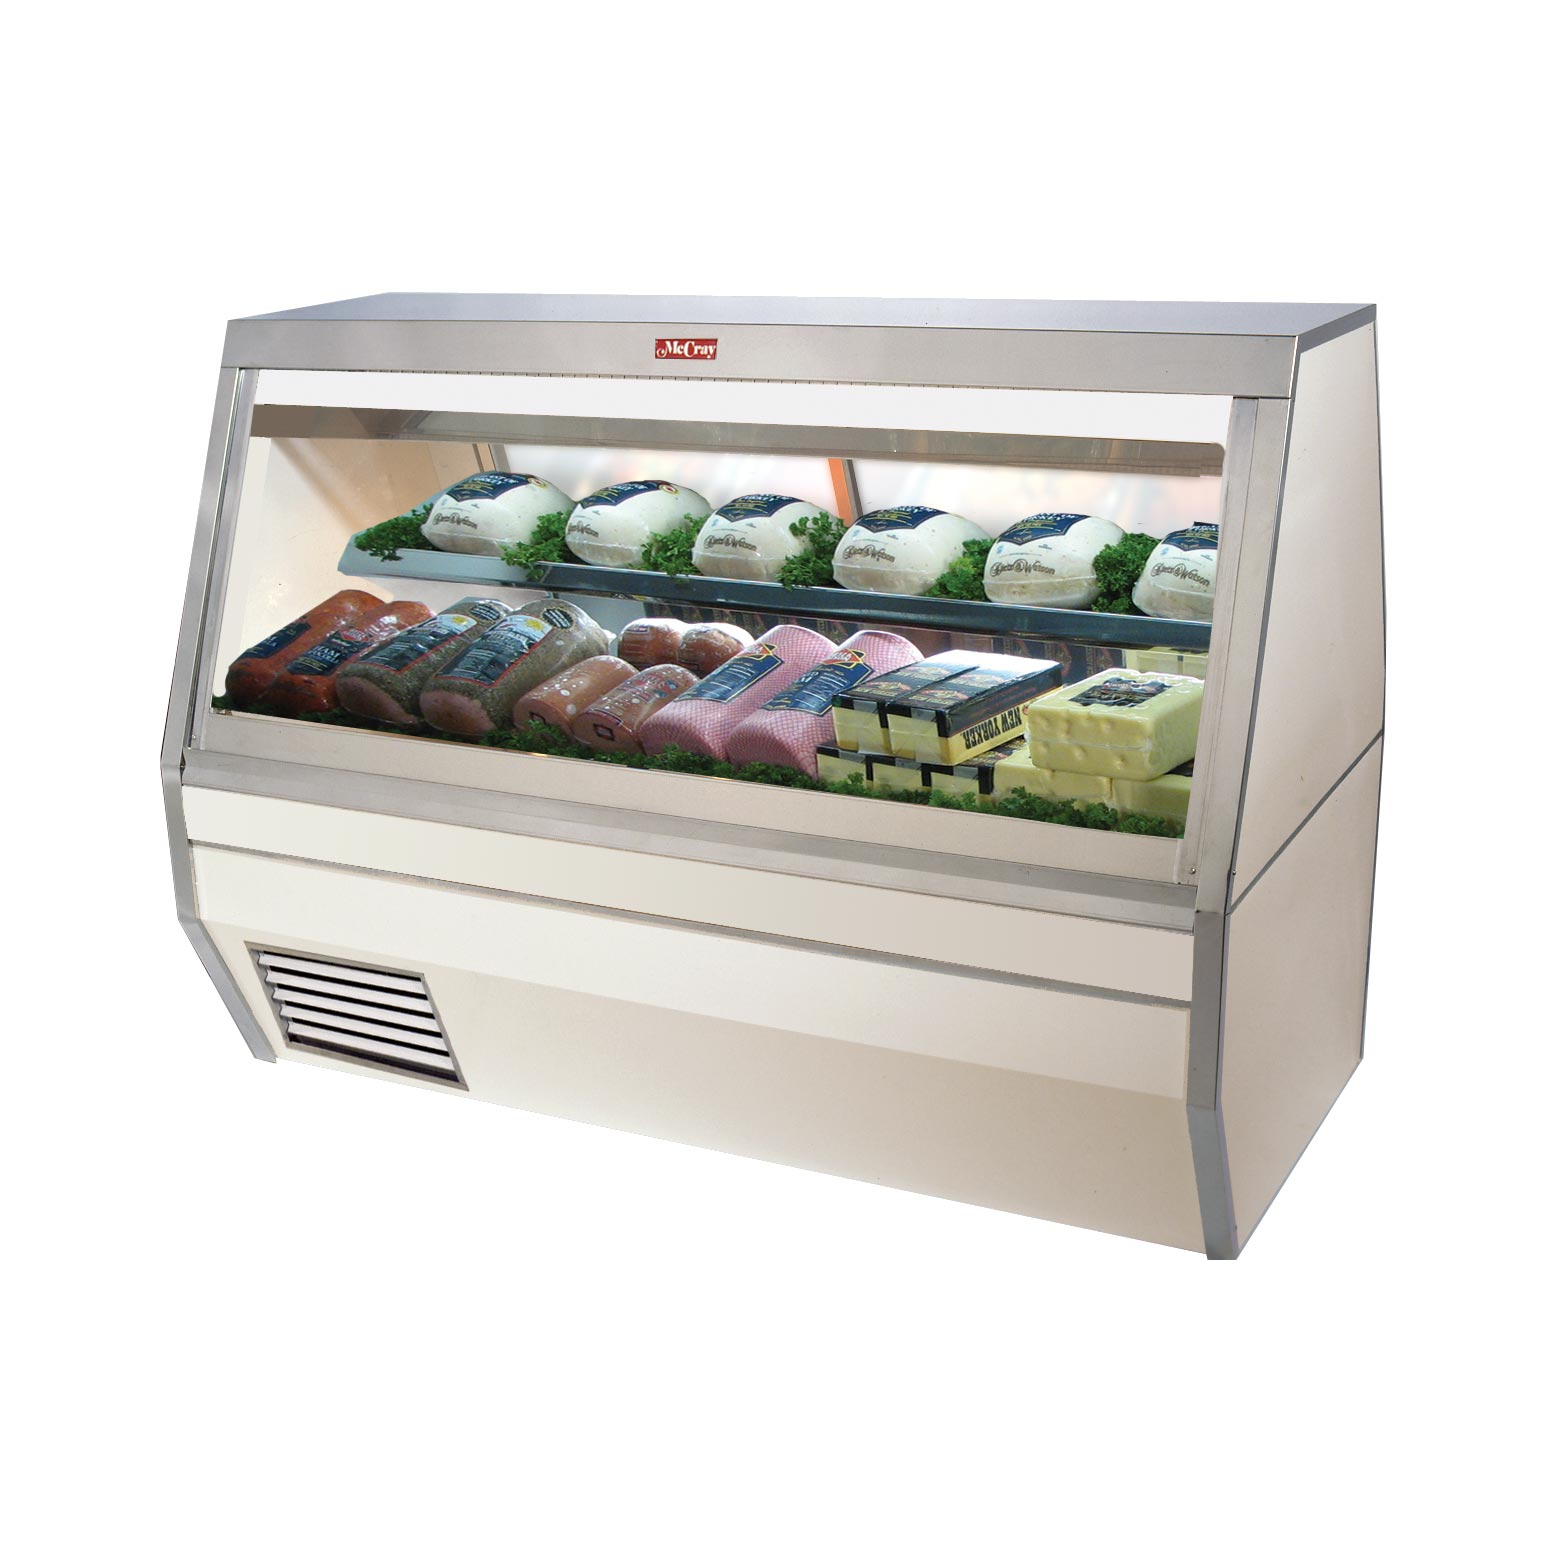 SC-CDS35-4-LED Howard-McCray display case, refrigerated deli